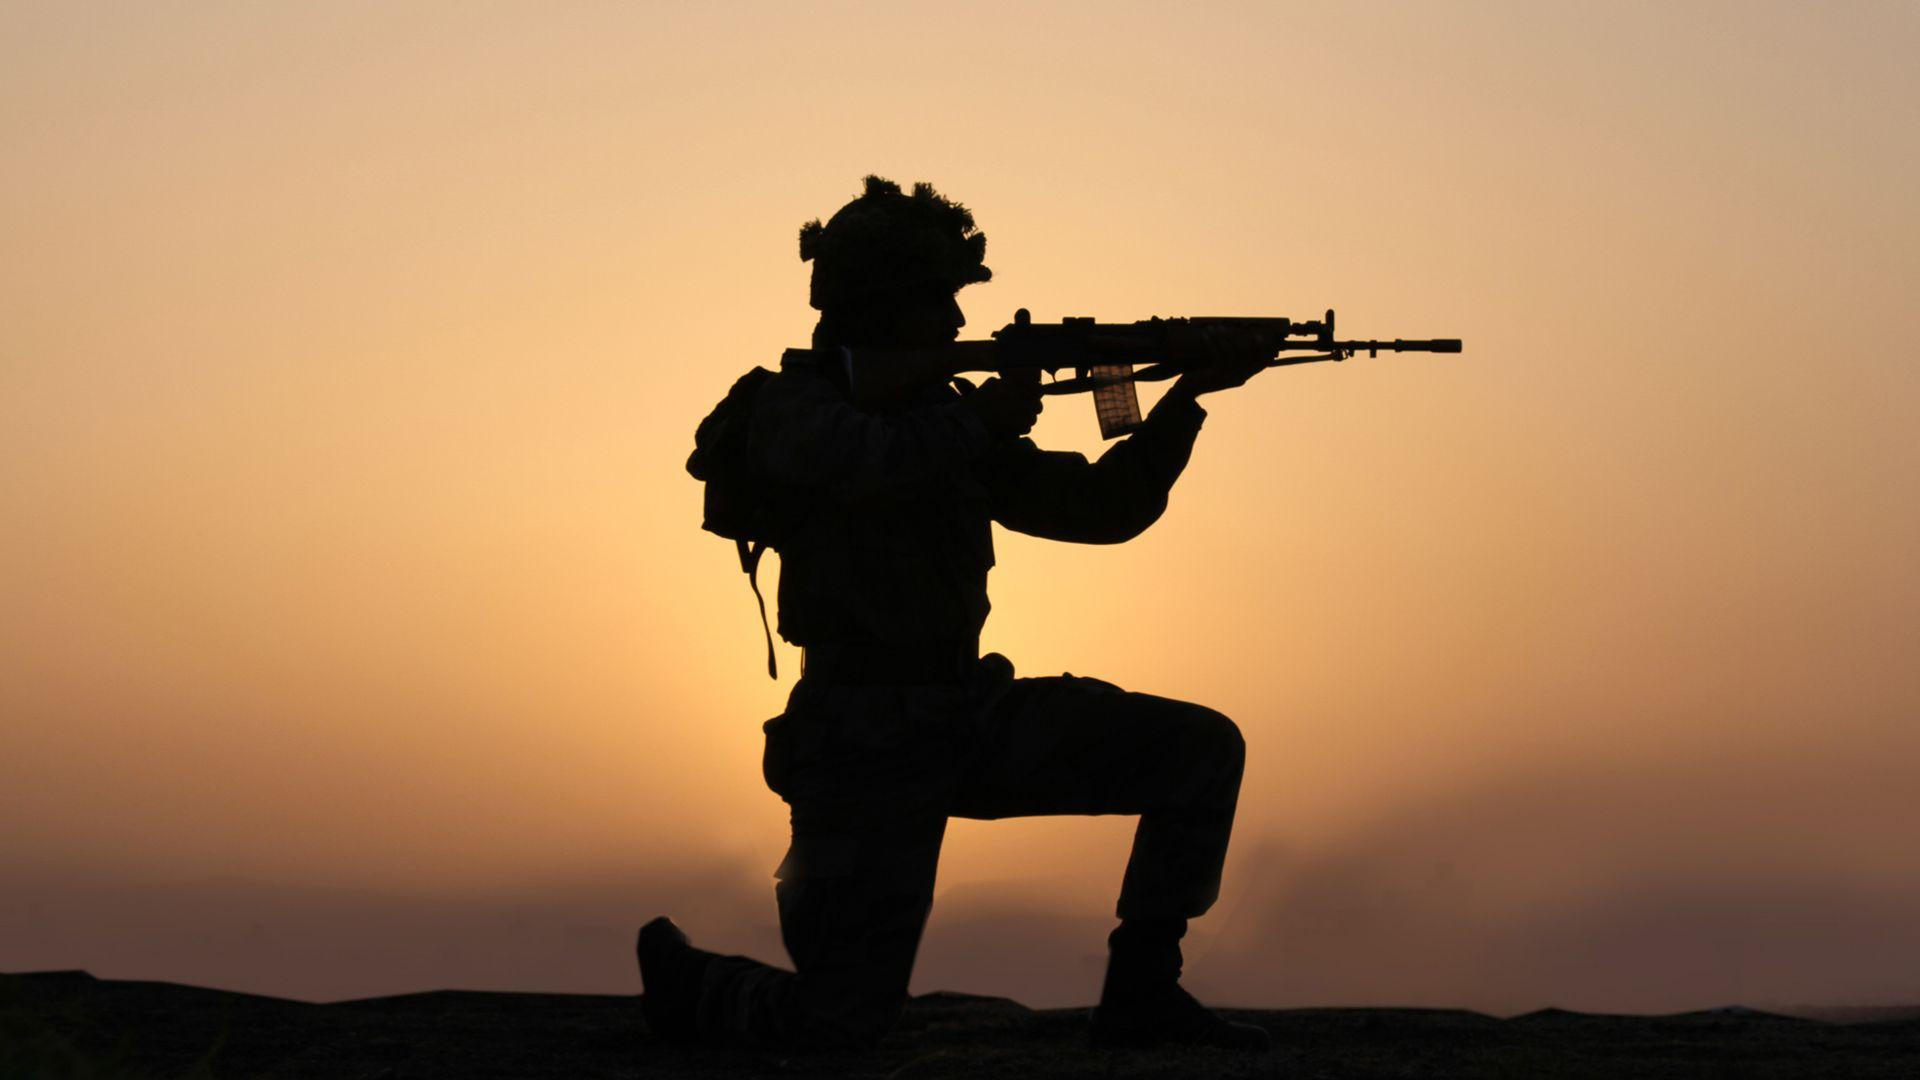 Indian Army Wallpaper With Sol R In Silhouette Hd Wallpapers